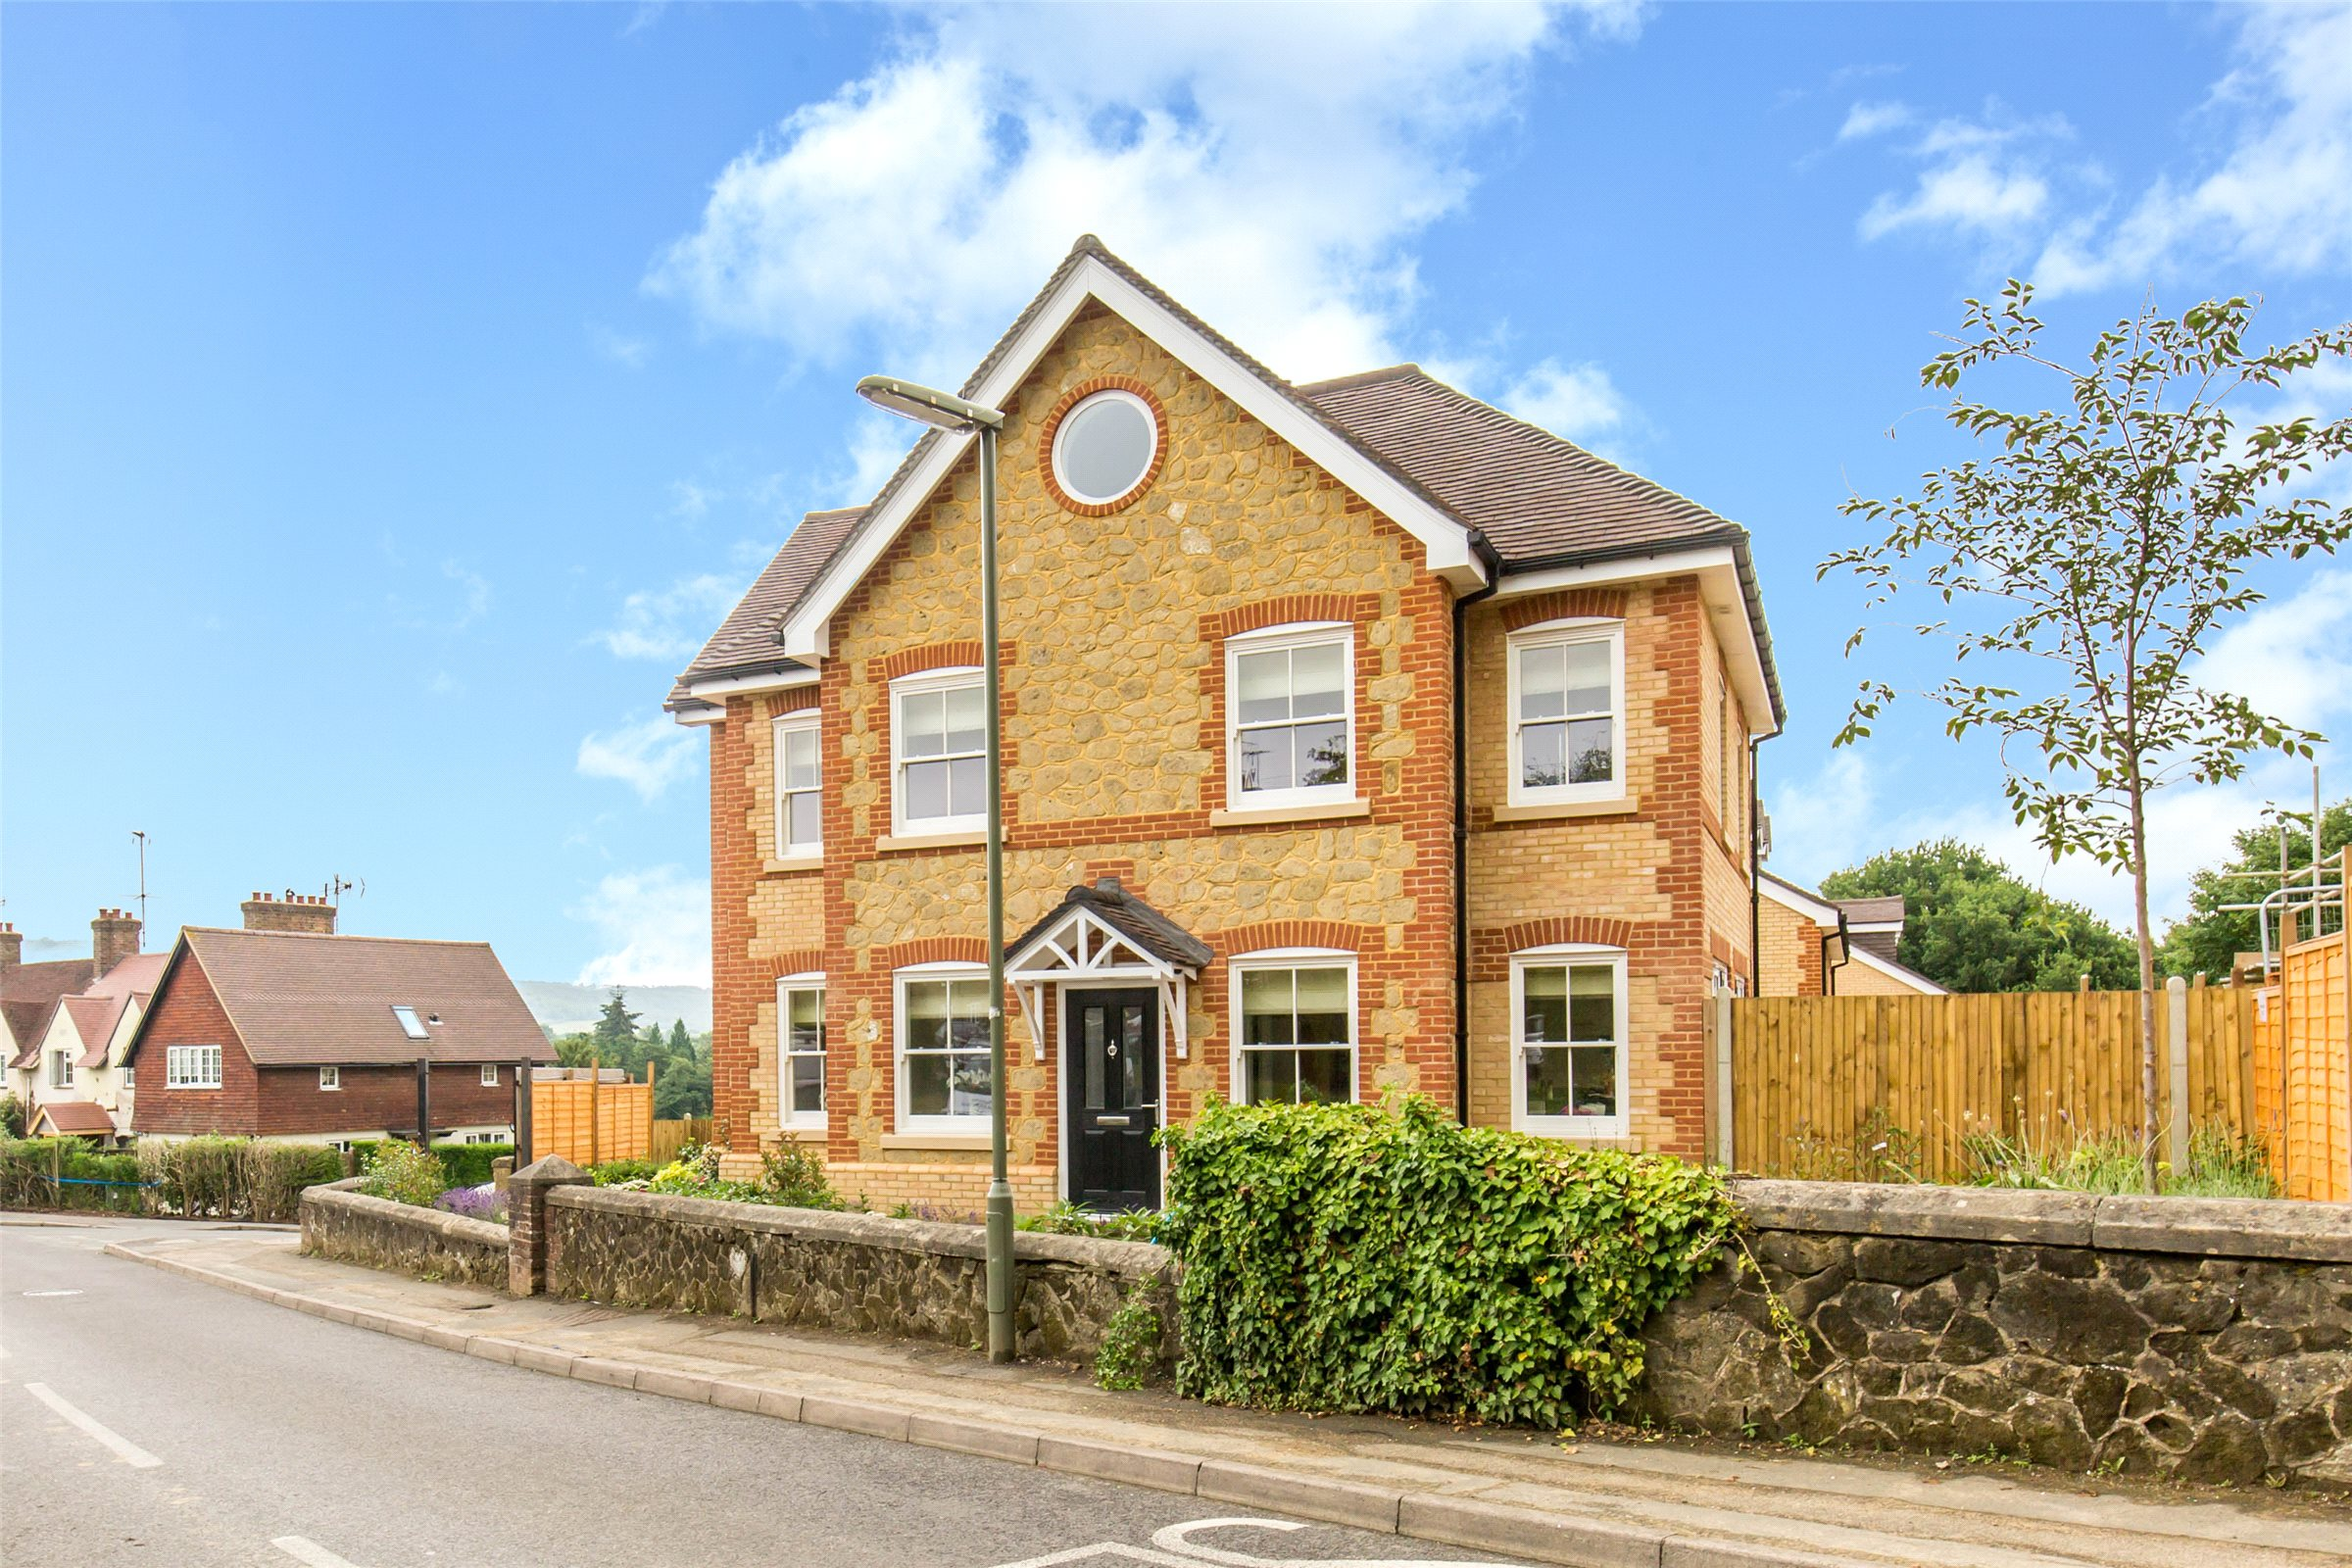 5 Bedrooms Detached House for sale in Beadles Lane, Old Oxted, Surrey, RH8